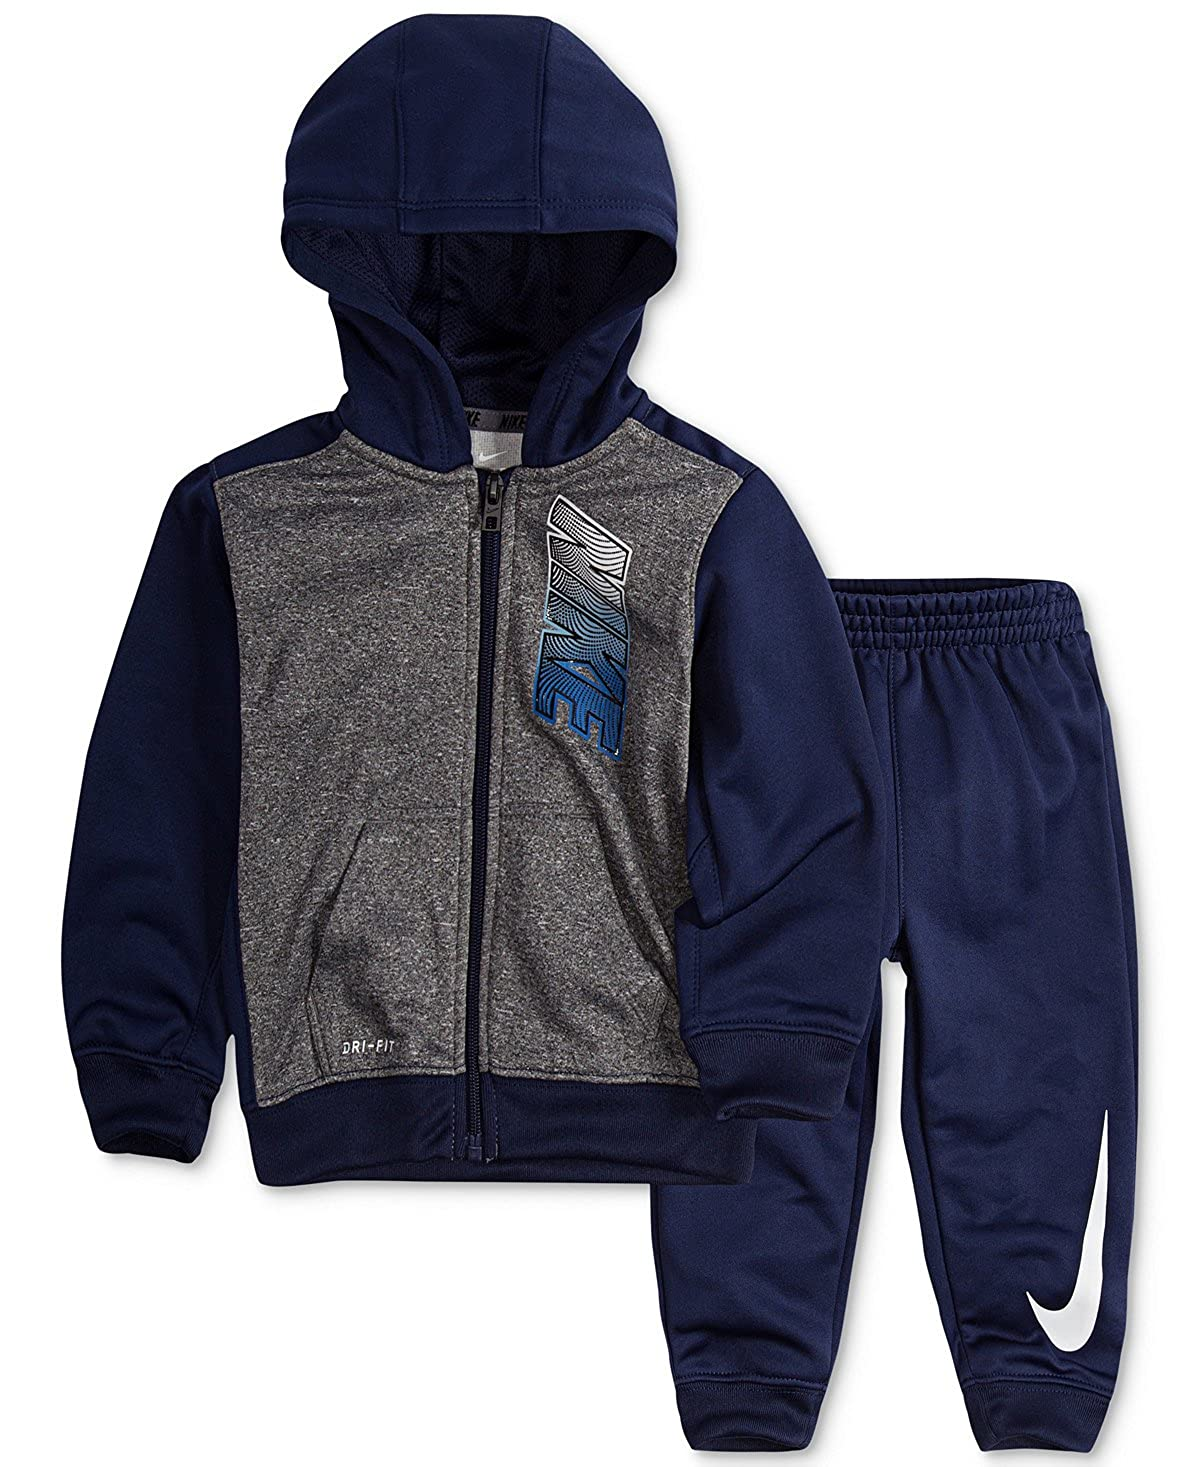 87c9f6e60 Top6: Nike Baby Boys` Therma-Fit Hoodie & Jogging Pants 2 Piece Set